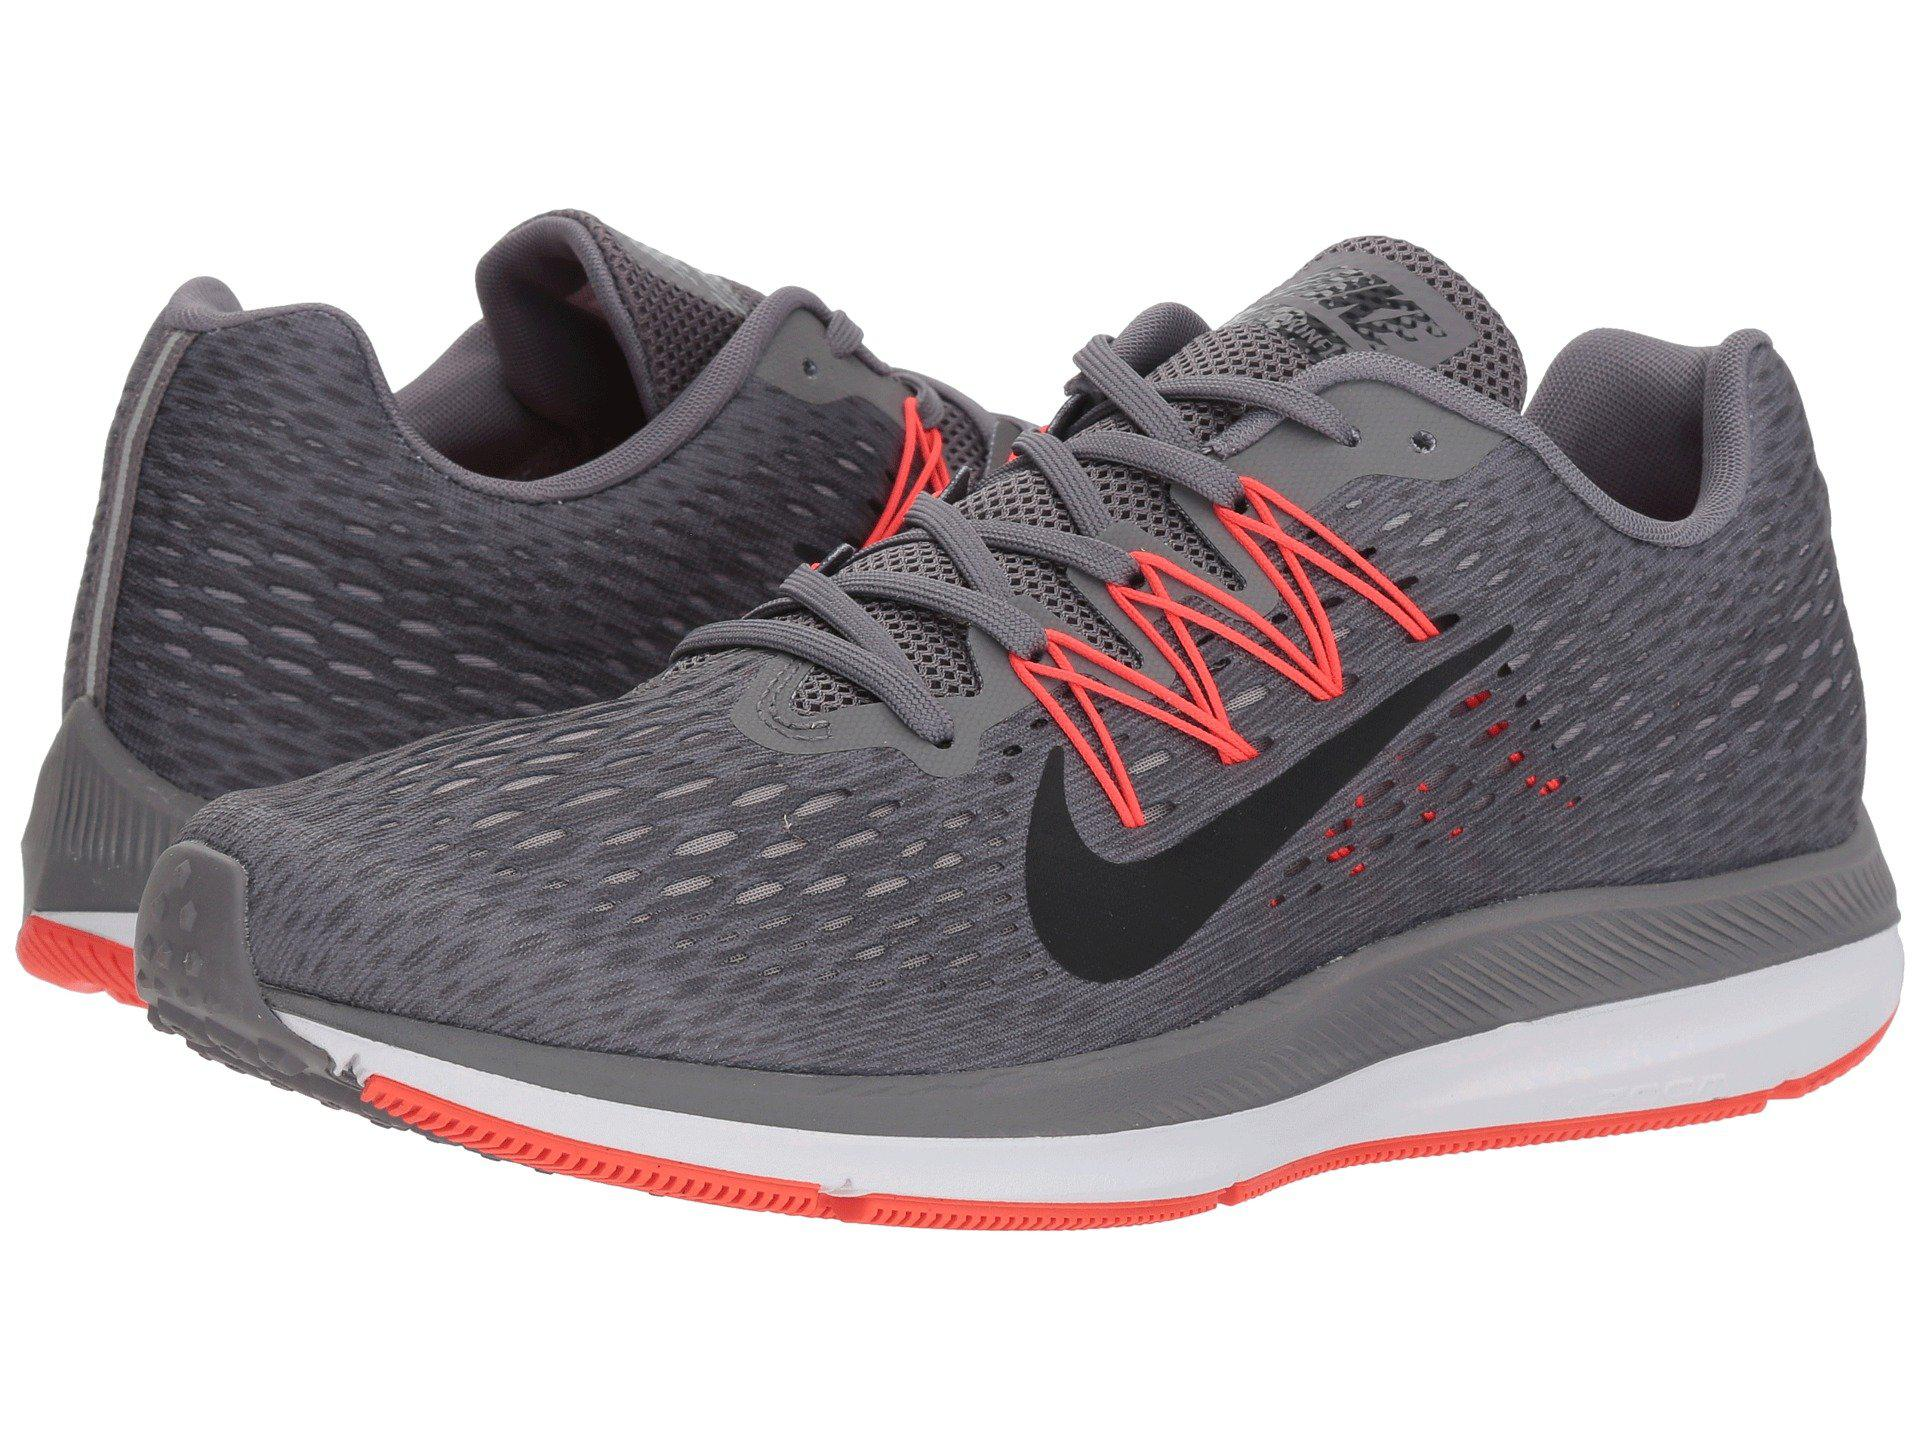 check out d4b5a 298a5 Men's Gray Zoom Winflo 2 Running Shoes